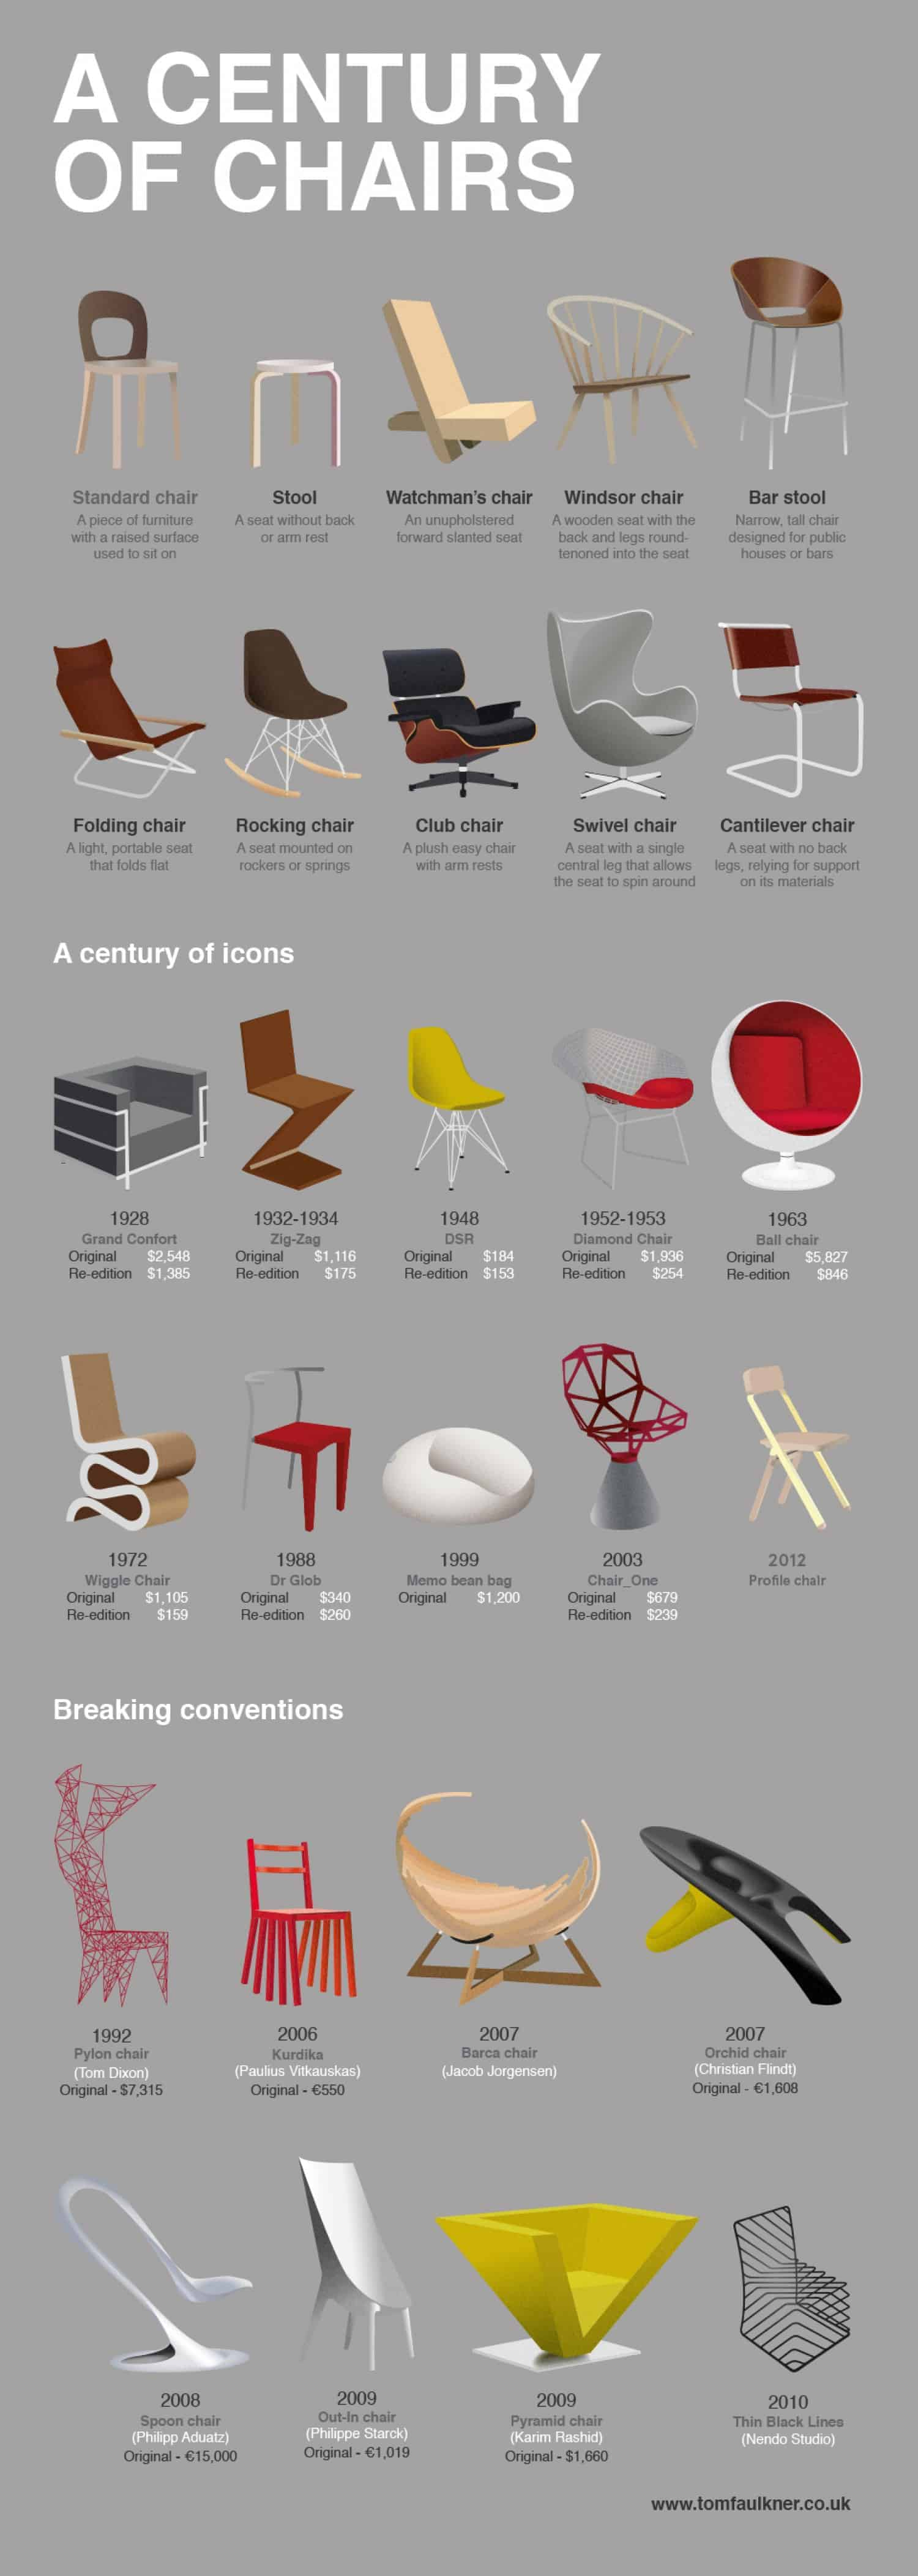 a-century-of-iconic-chairs_5305d5578a153_w1500